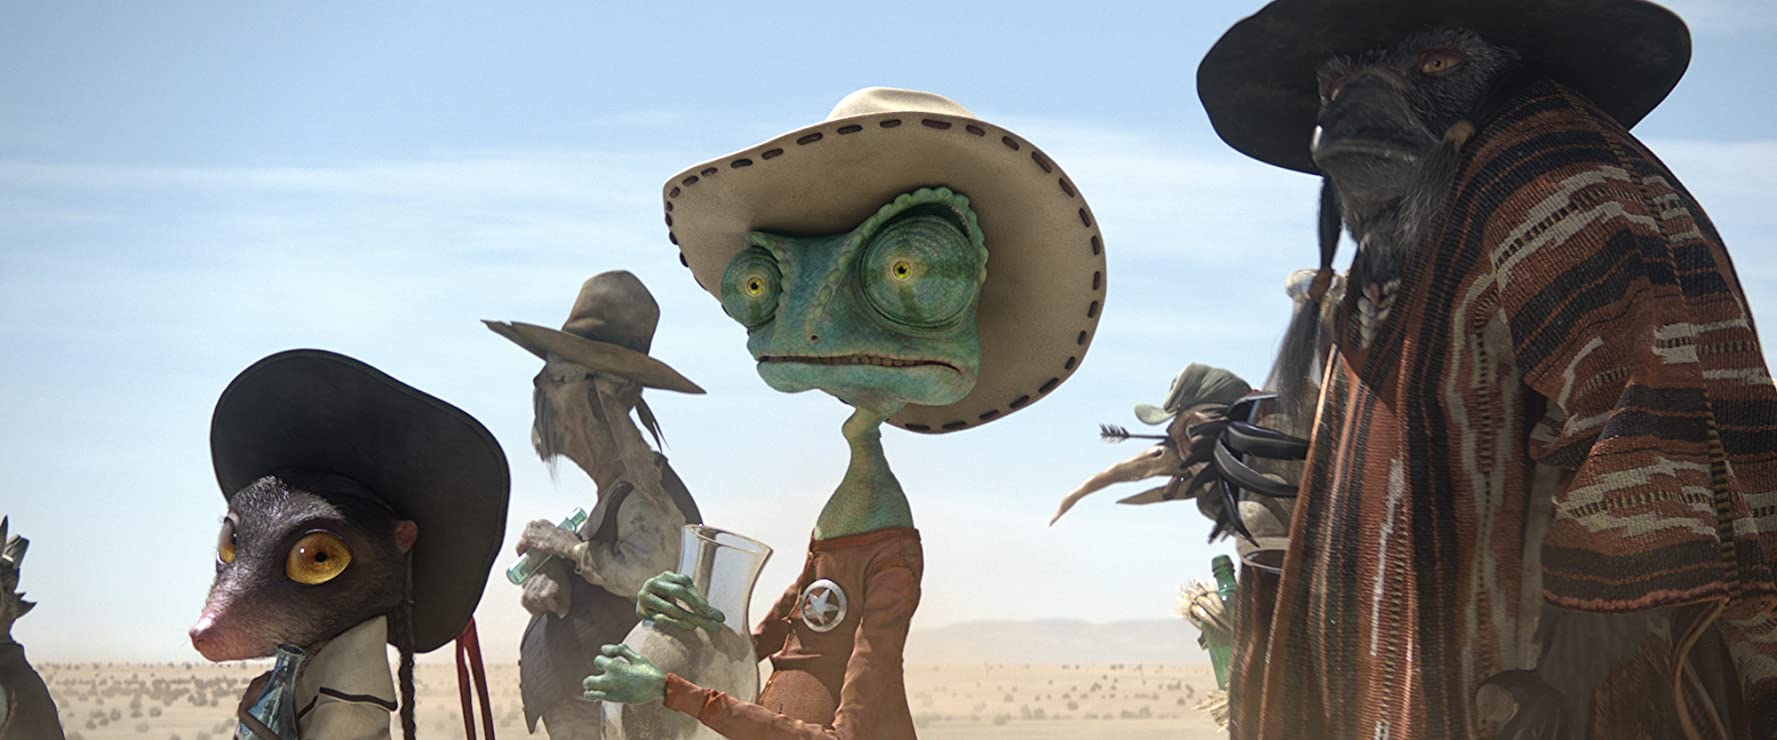 Johnny Depp, Gil Birmingham, and Abigail Breslin in Rango (2011)